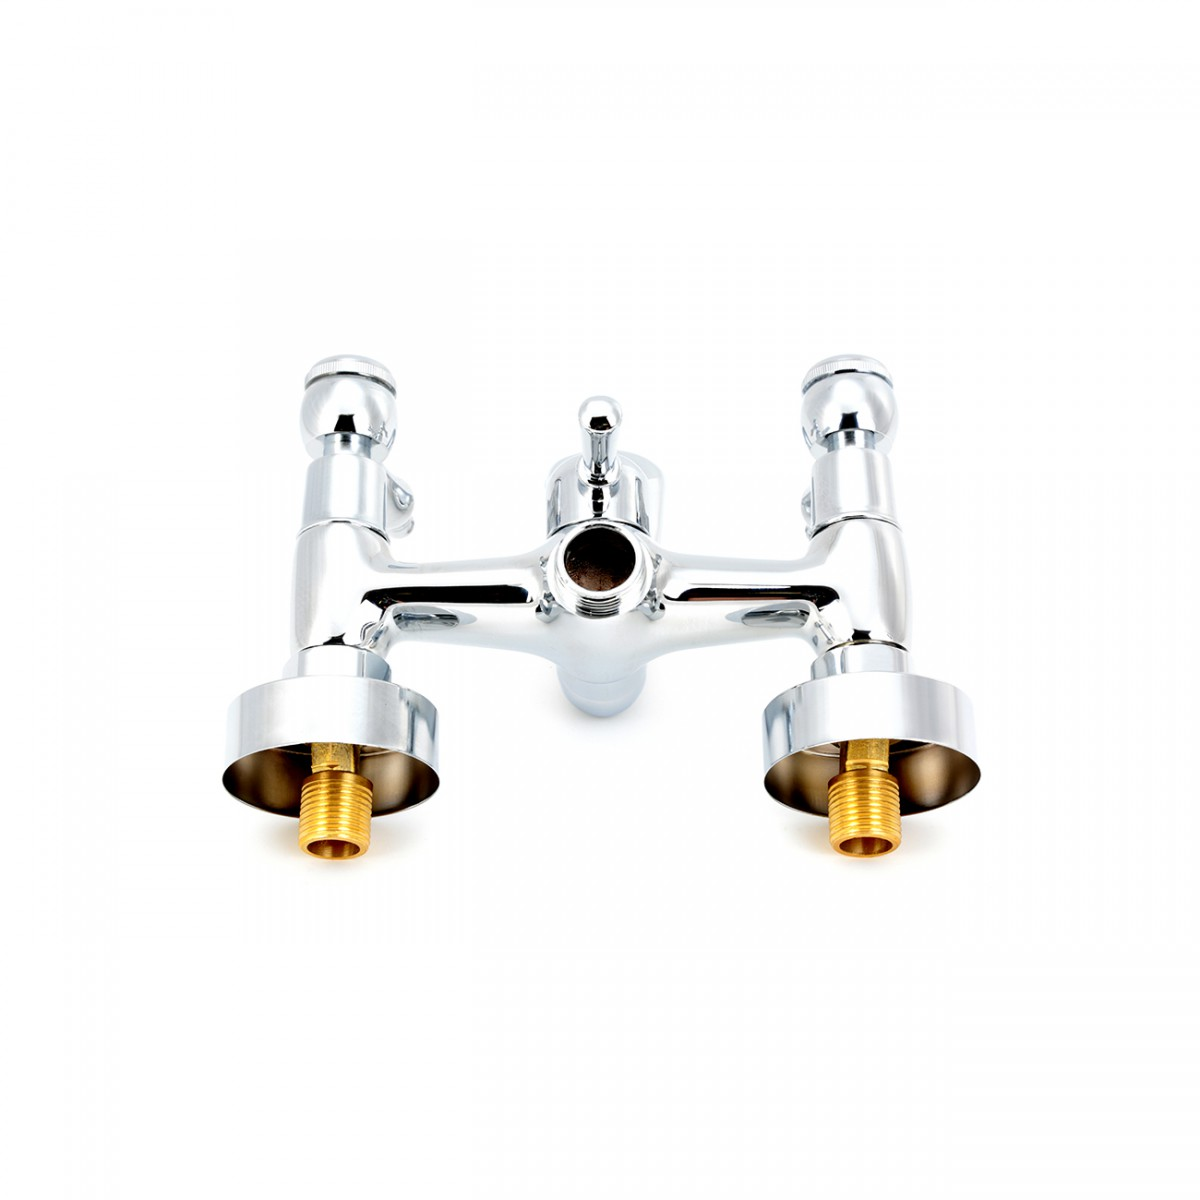 Clawfoot Tub Faucet Wall Mount Chrome Teardrop Levers 6 Bathroom Faucet Part Faucet Part Faucet Parts